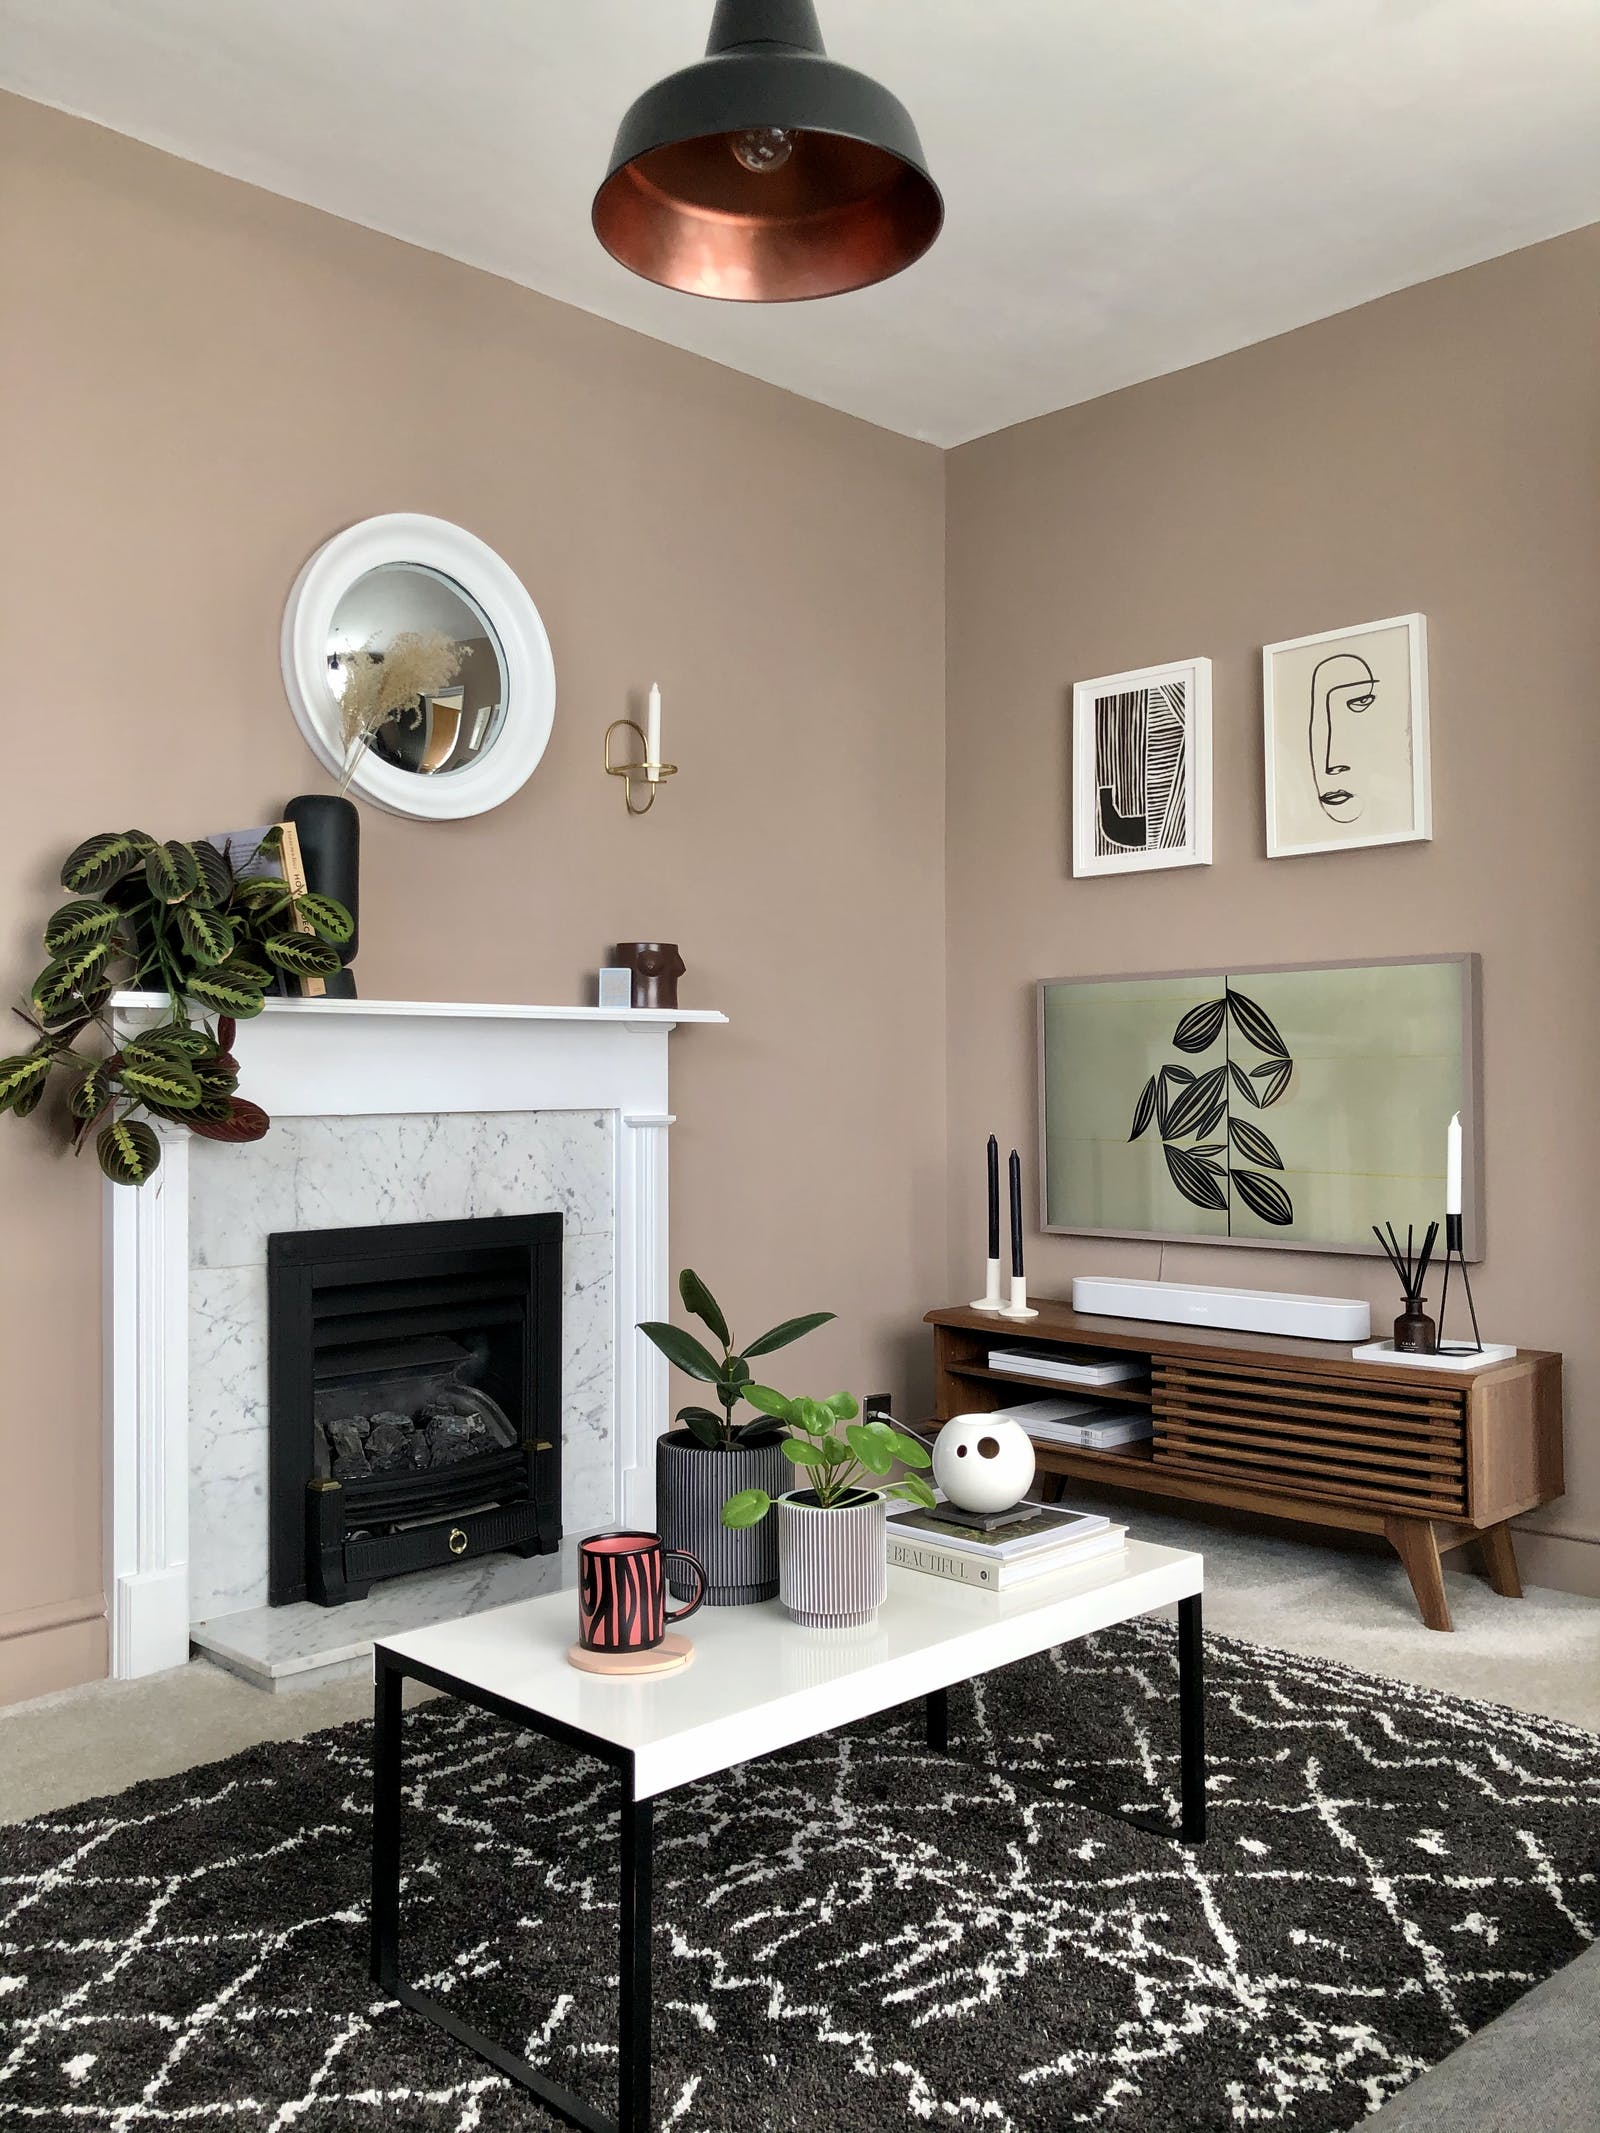 Living room with beige walls and marble fireplace